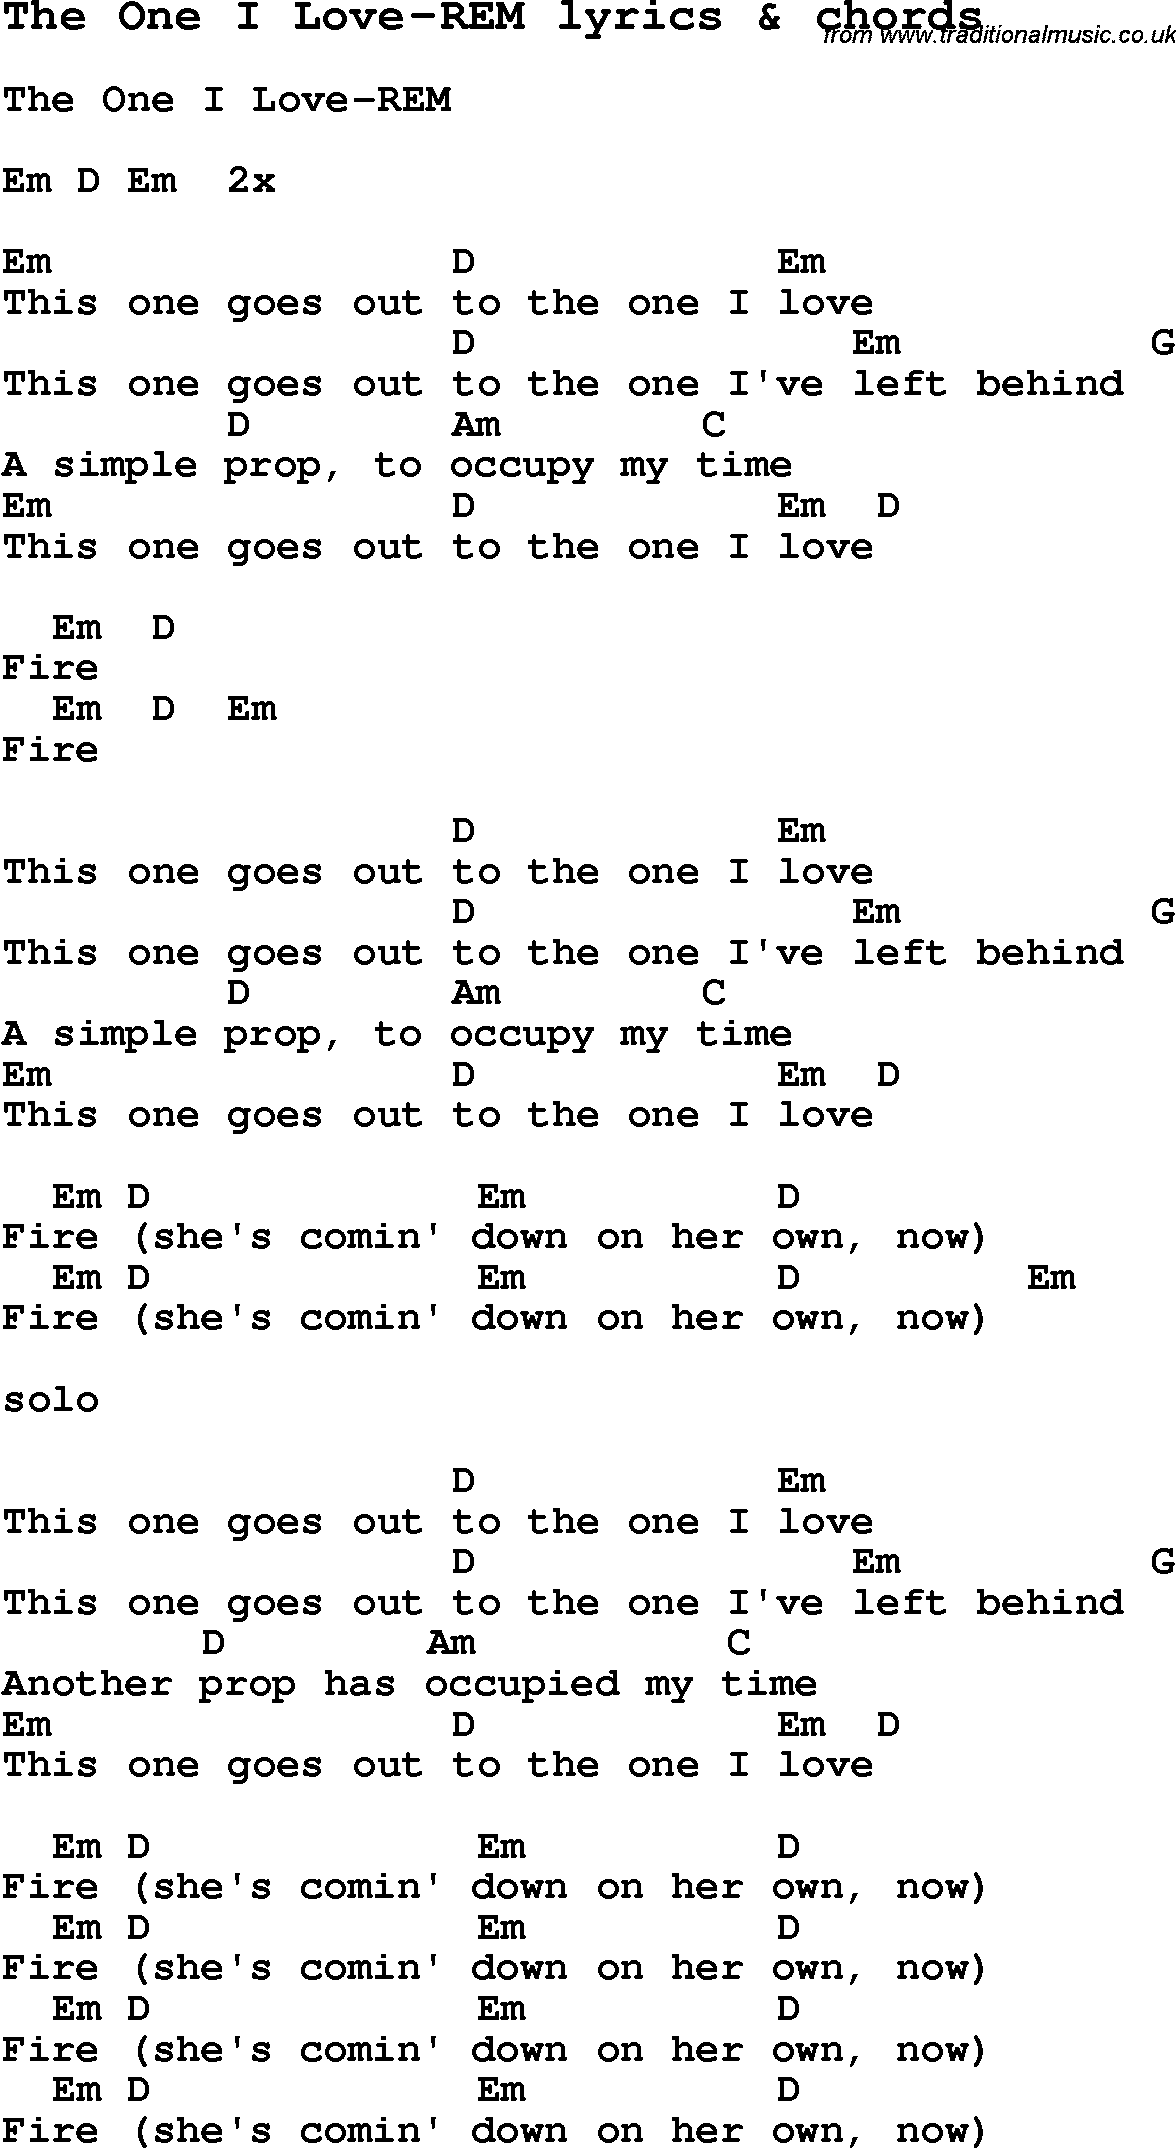 Love song lyrics for the one i love rem with chords for ukulele love song lyrics for the one i love rem with chords for ukulele hexwebz Image collections